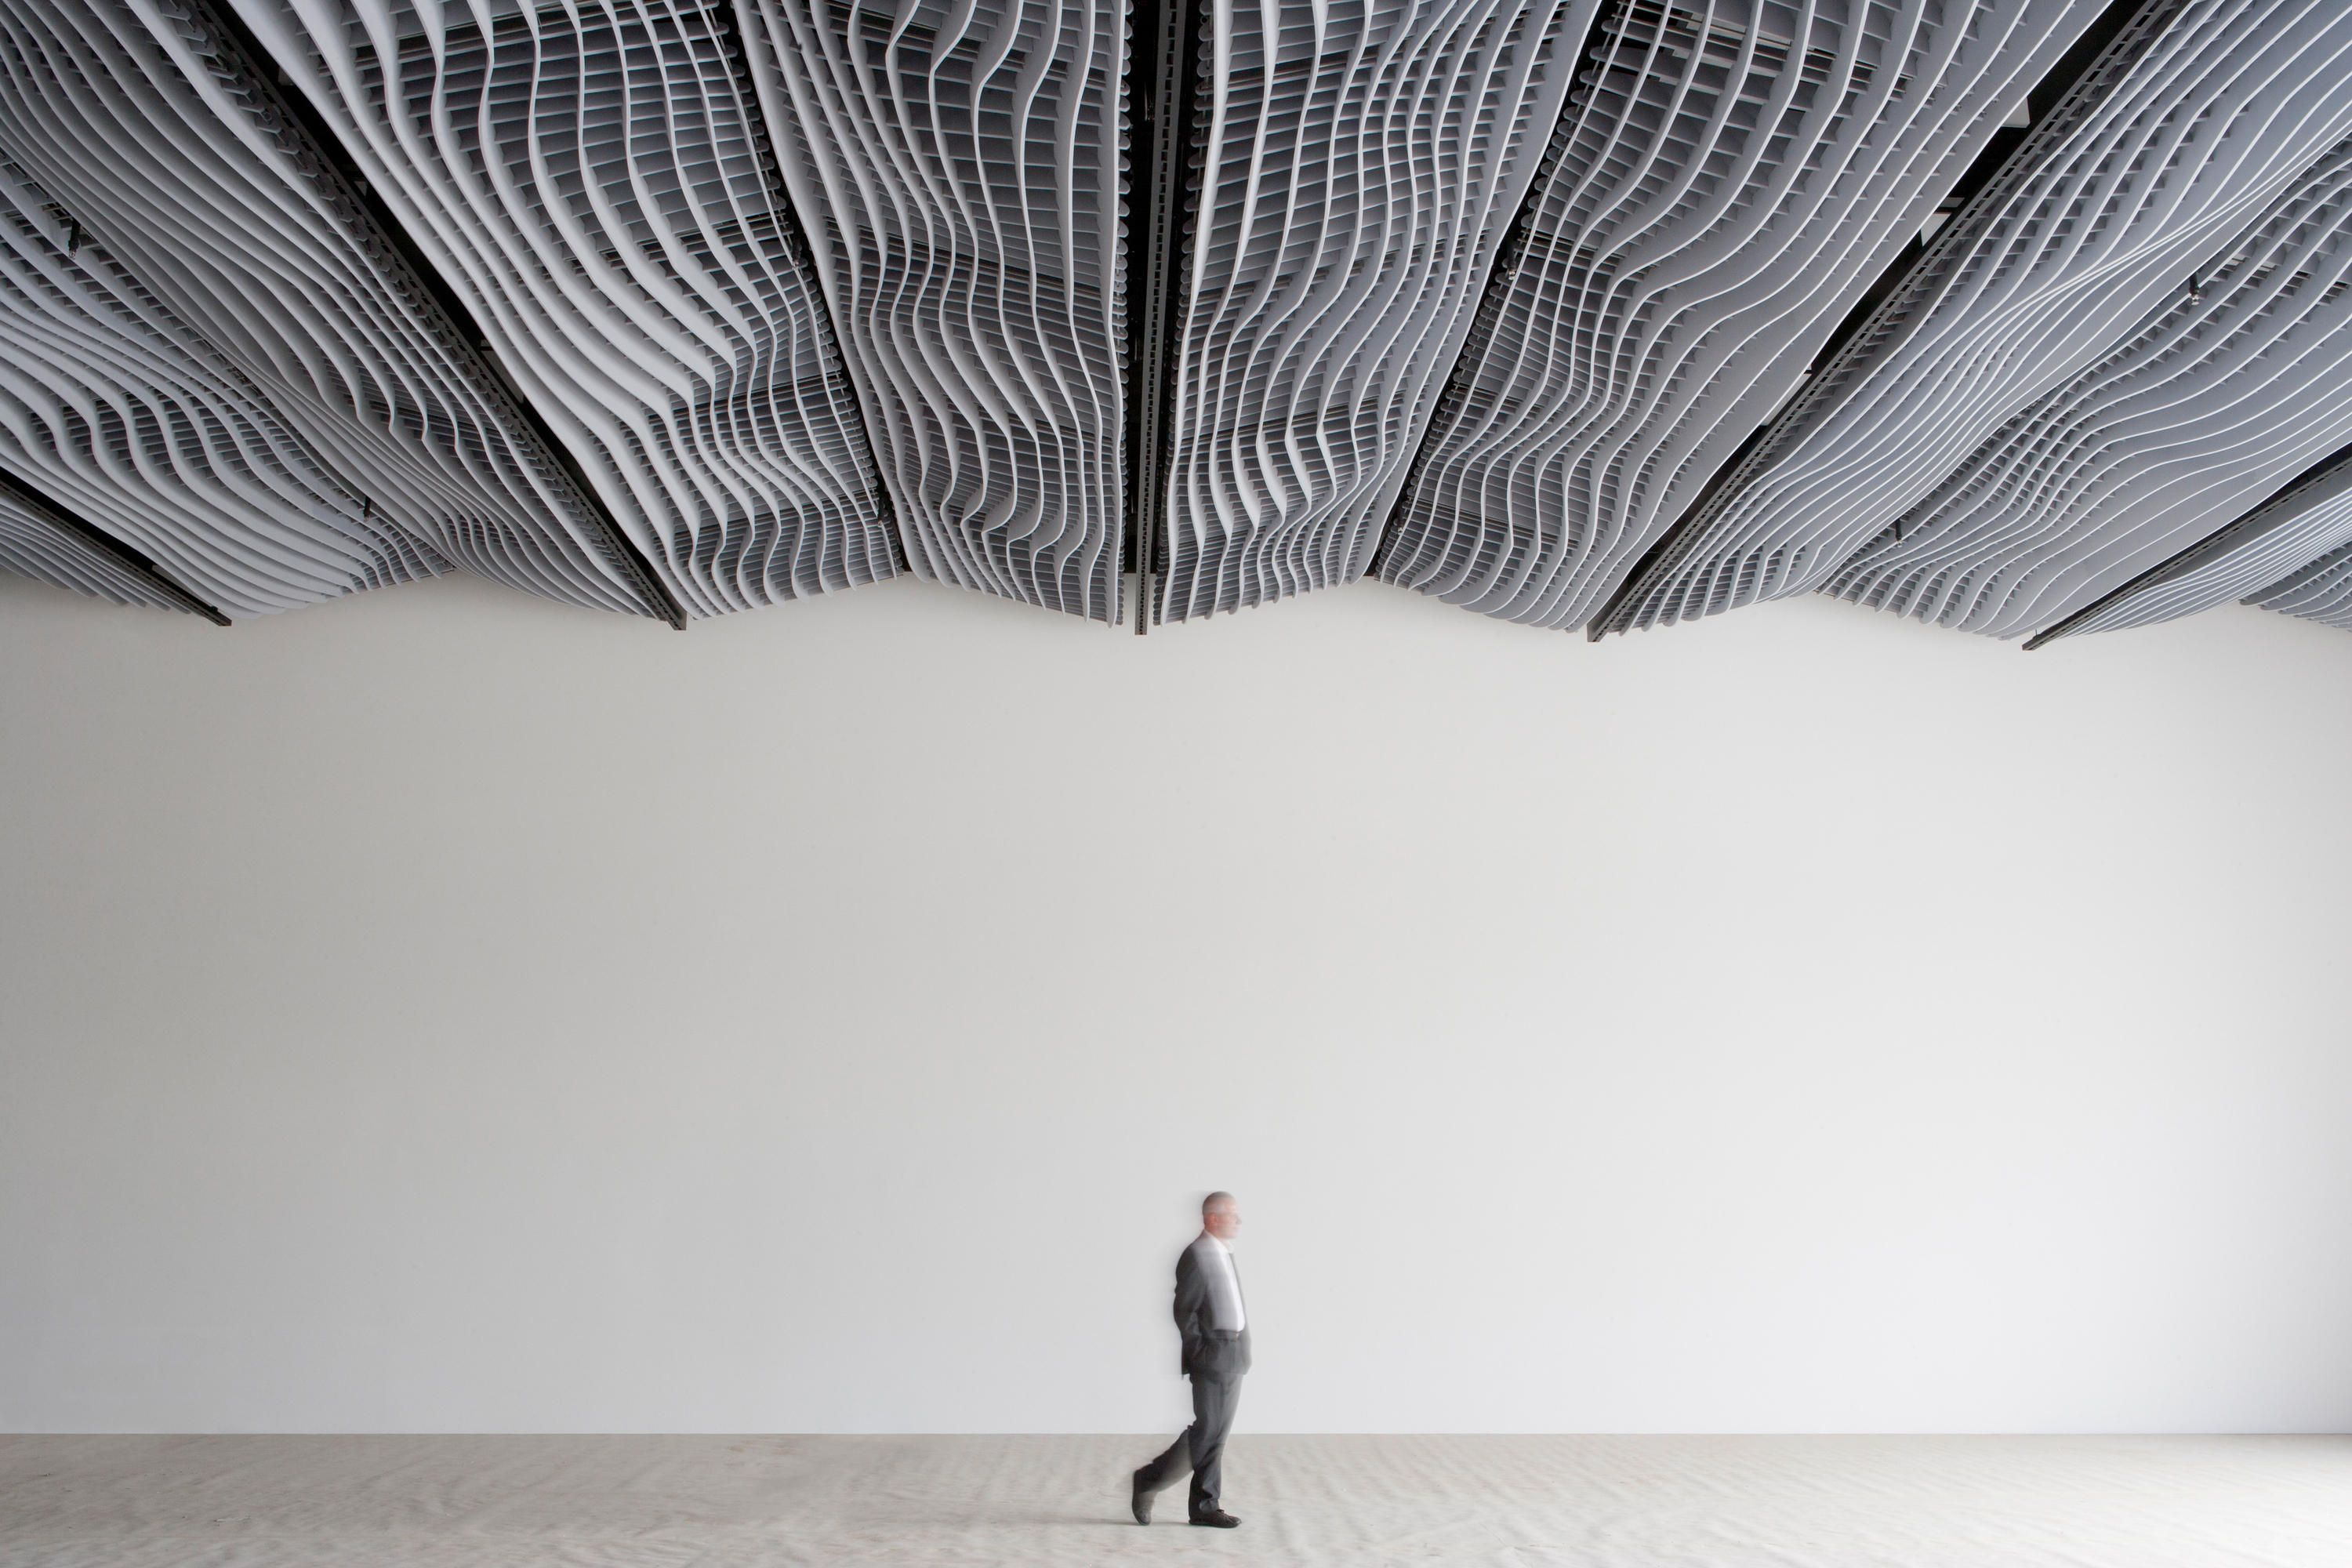 Wave acoustic absorber ceiling ceiling systems by wave - Revestimiento de techos ...